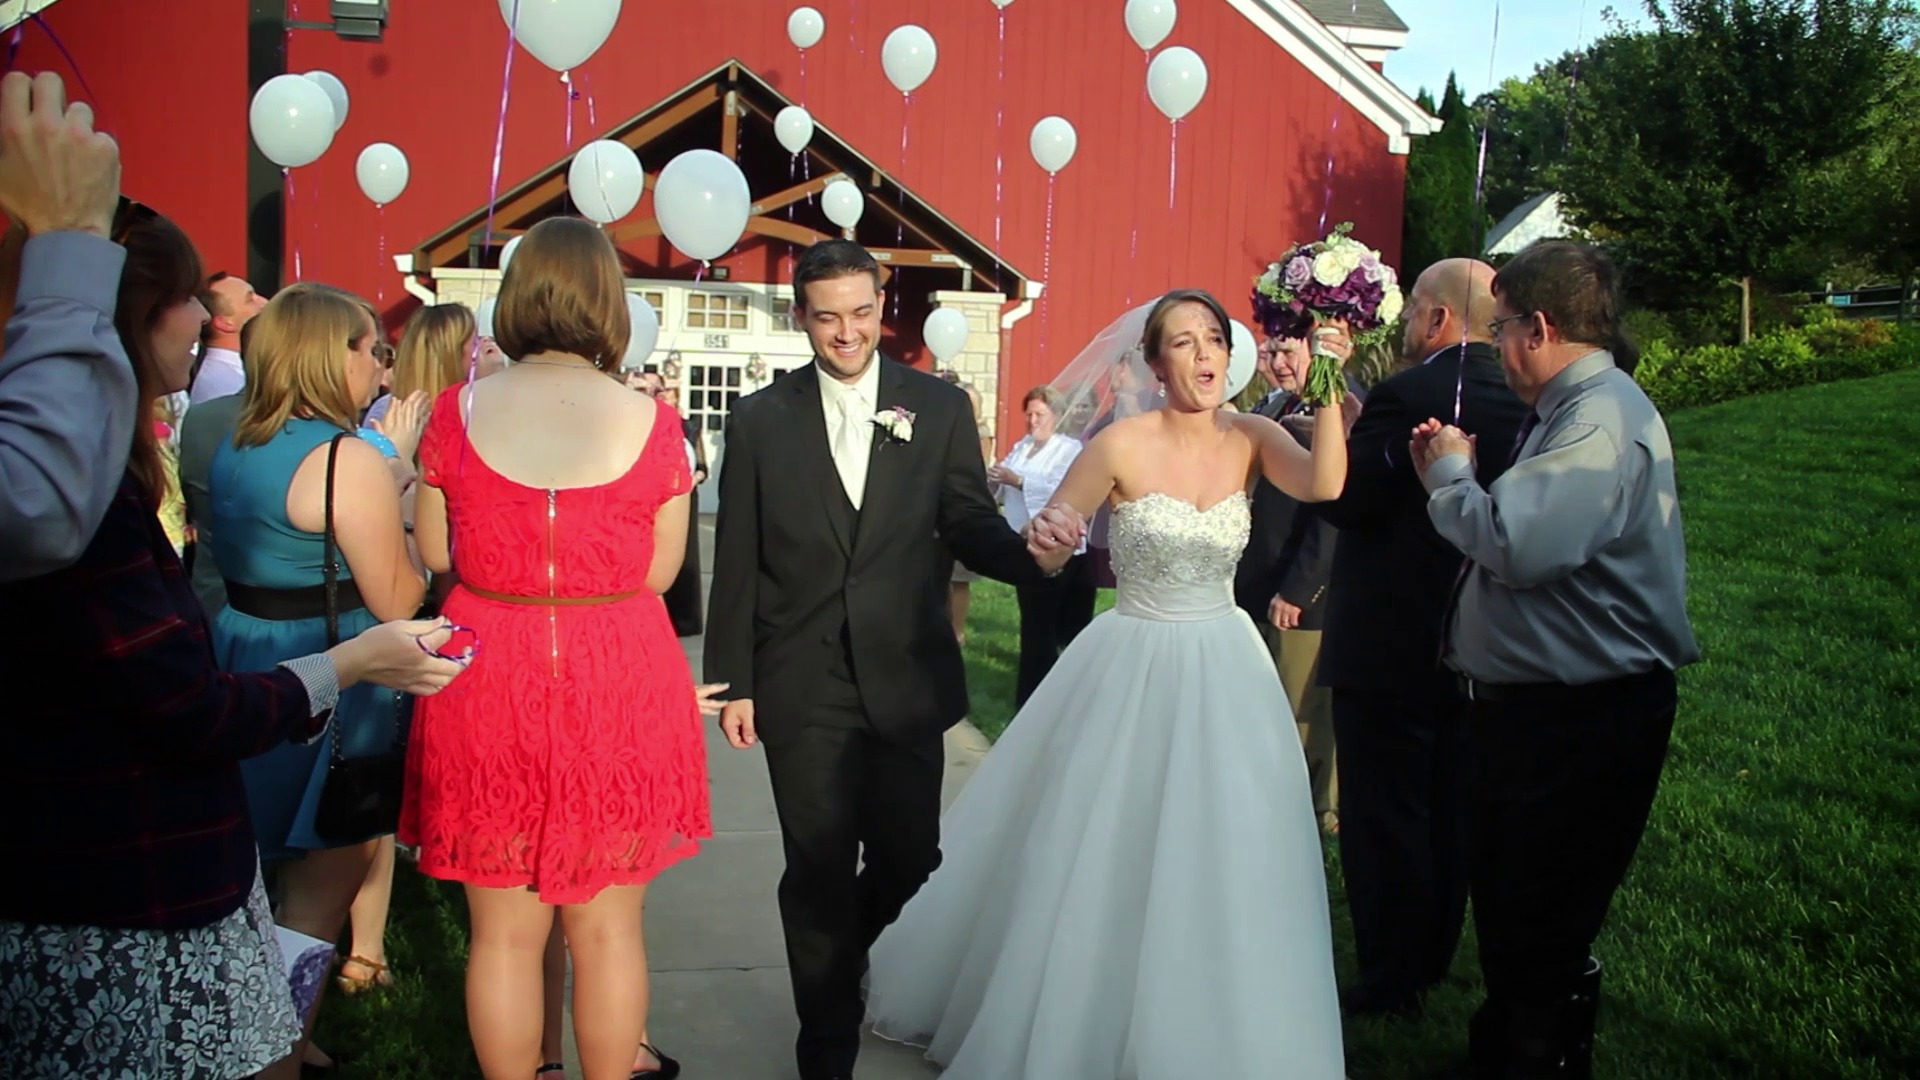 A thumbnail for Maggie and Brian's wedding highlight video